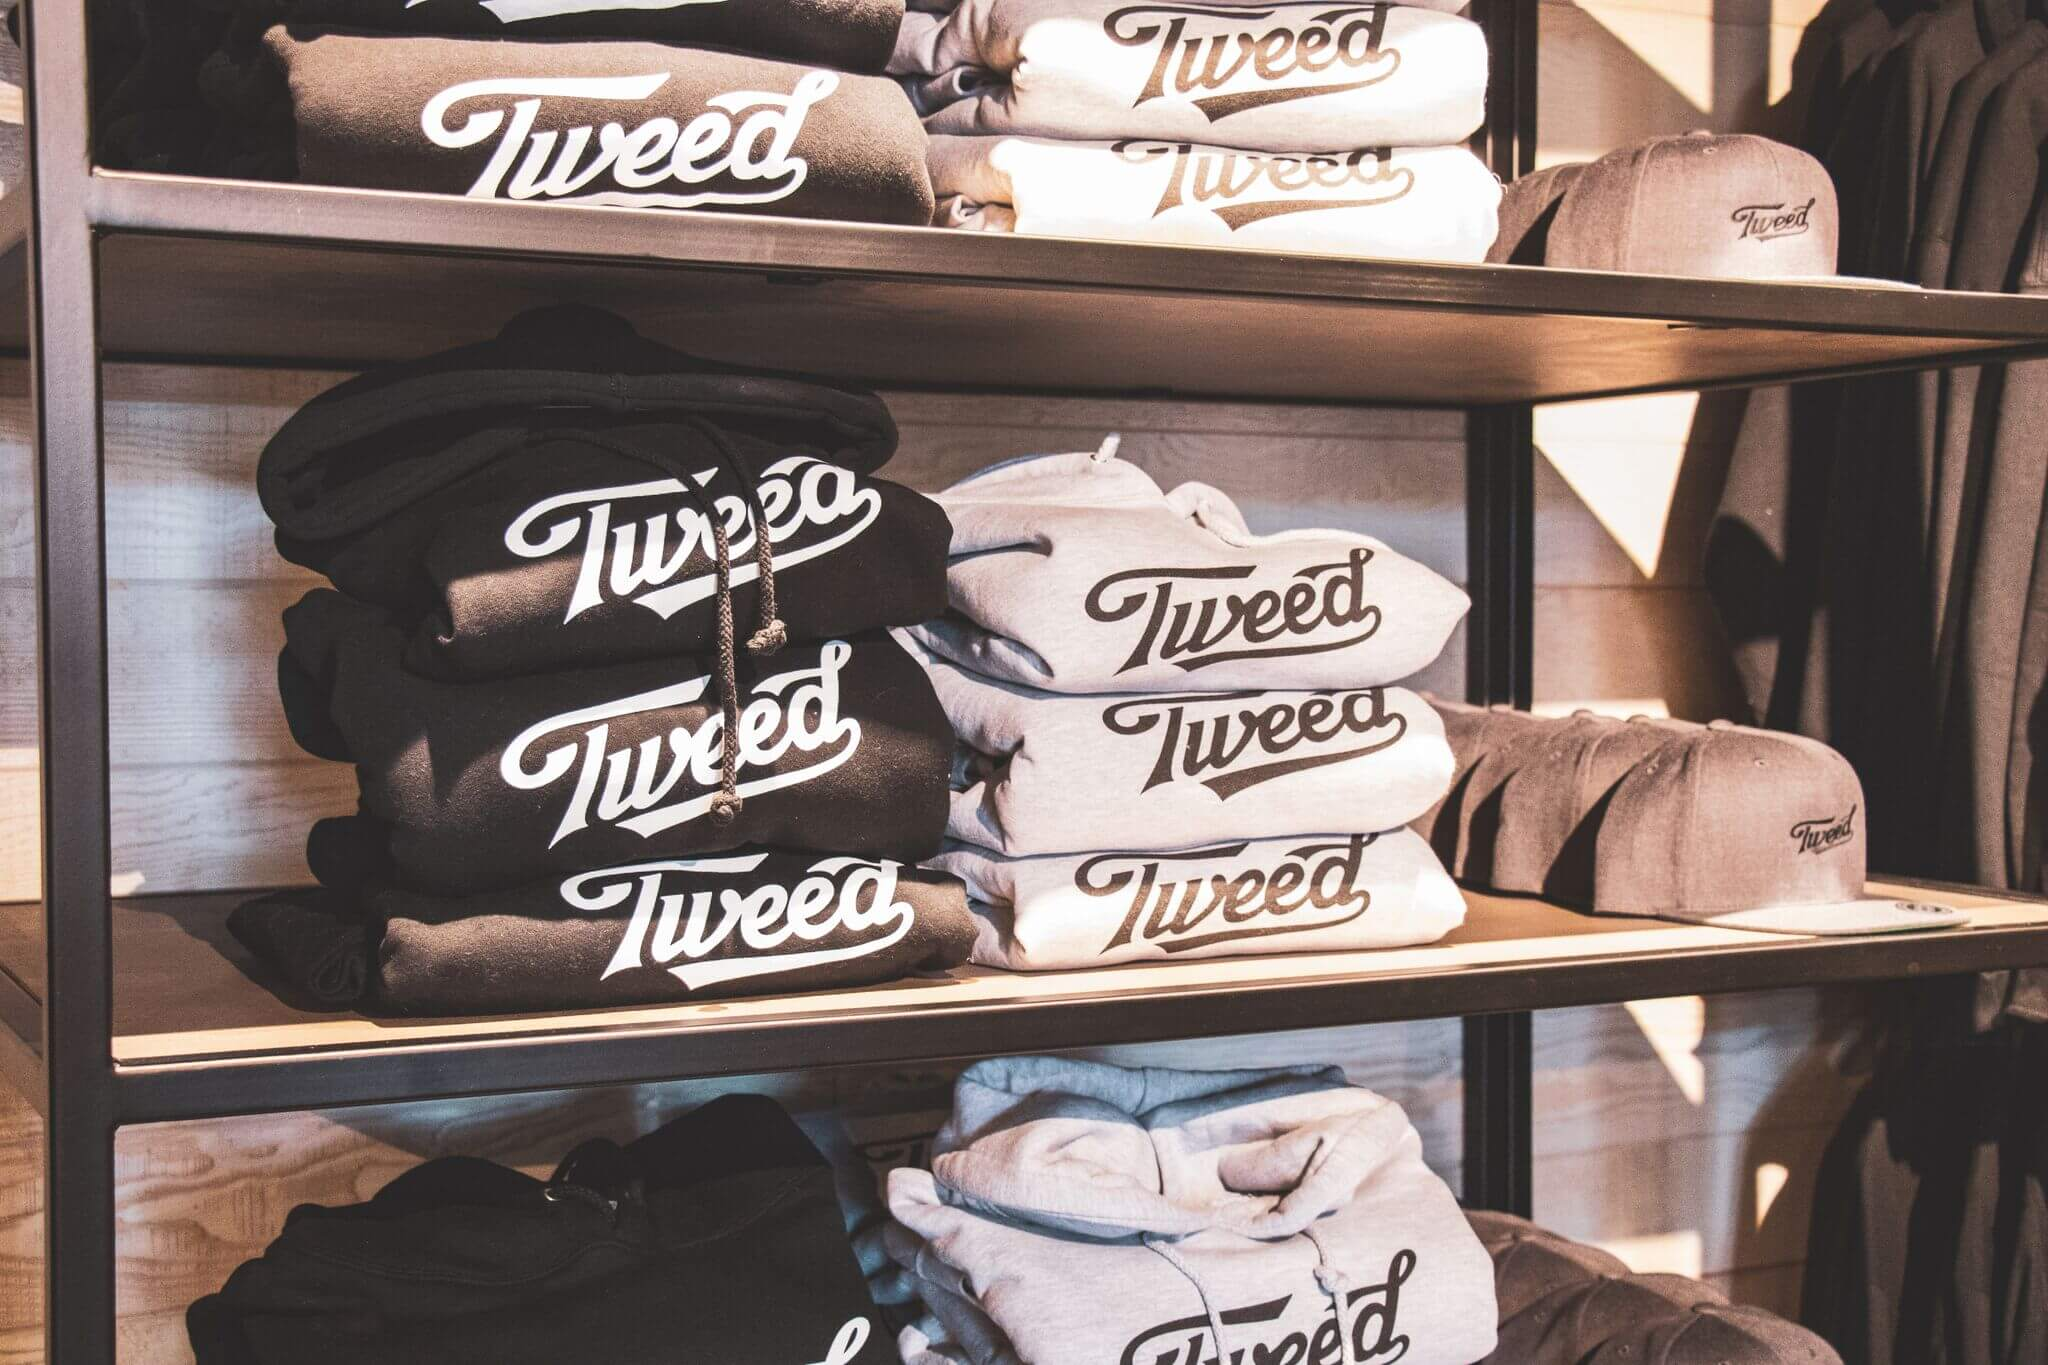 Tweed Sweatshirts On Shelves at Visitor Centre